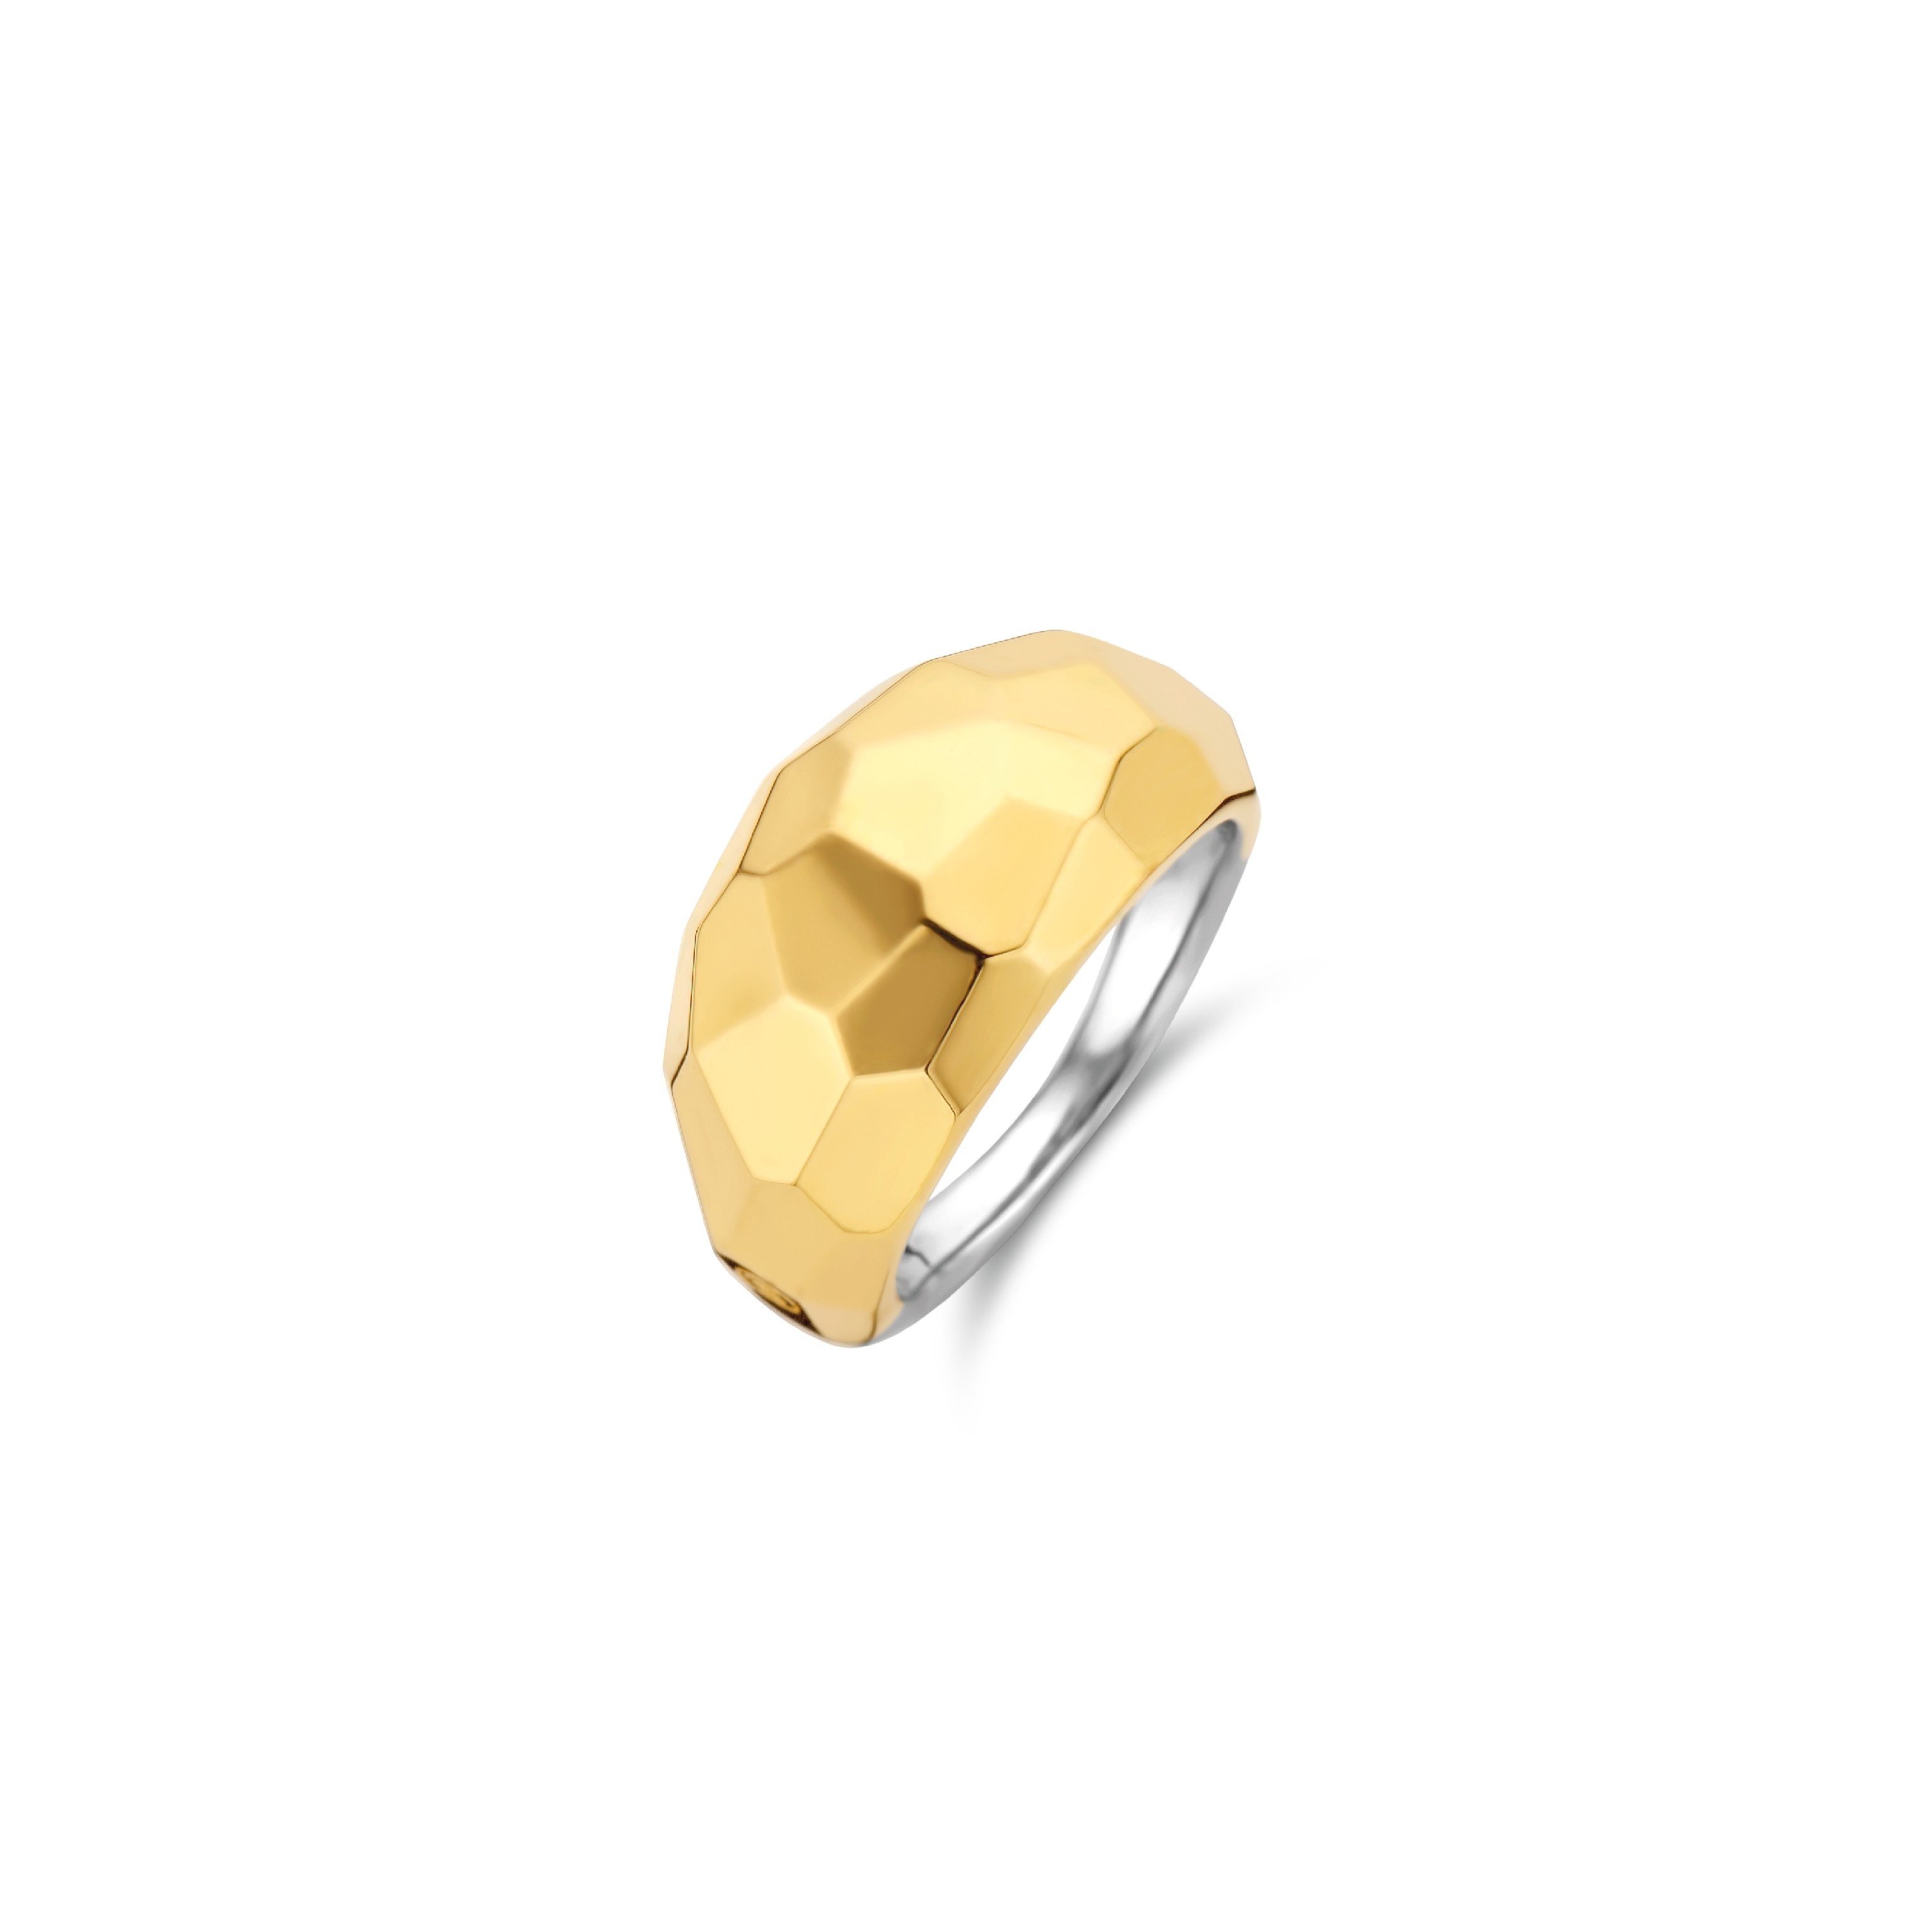 TI SENTO Milano Ring 12200SY Zilver gold plated Maat 52